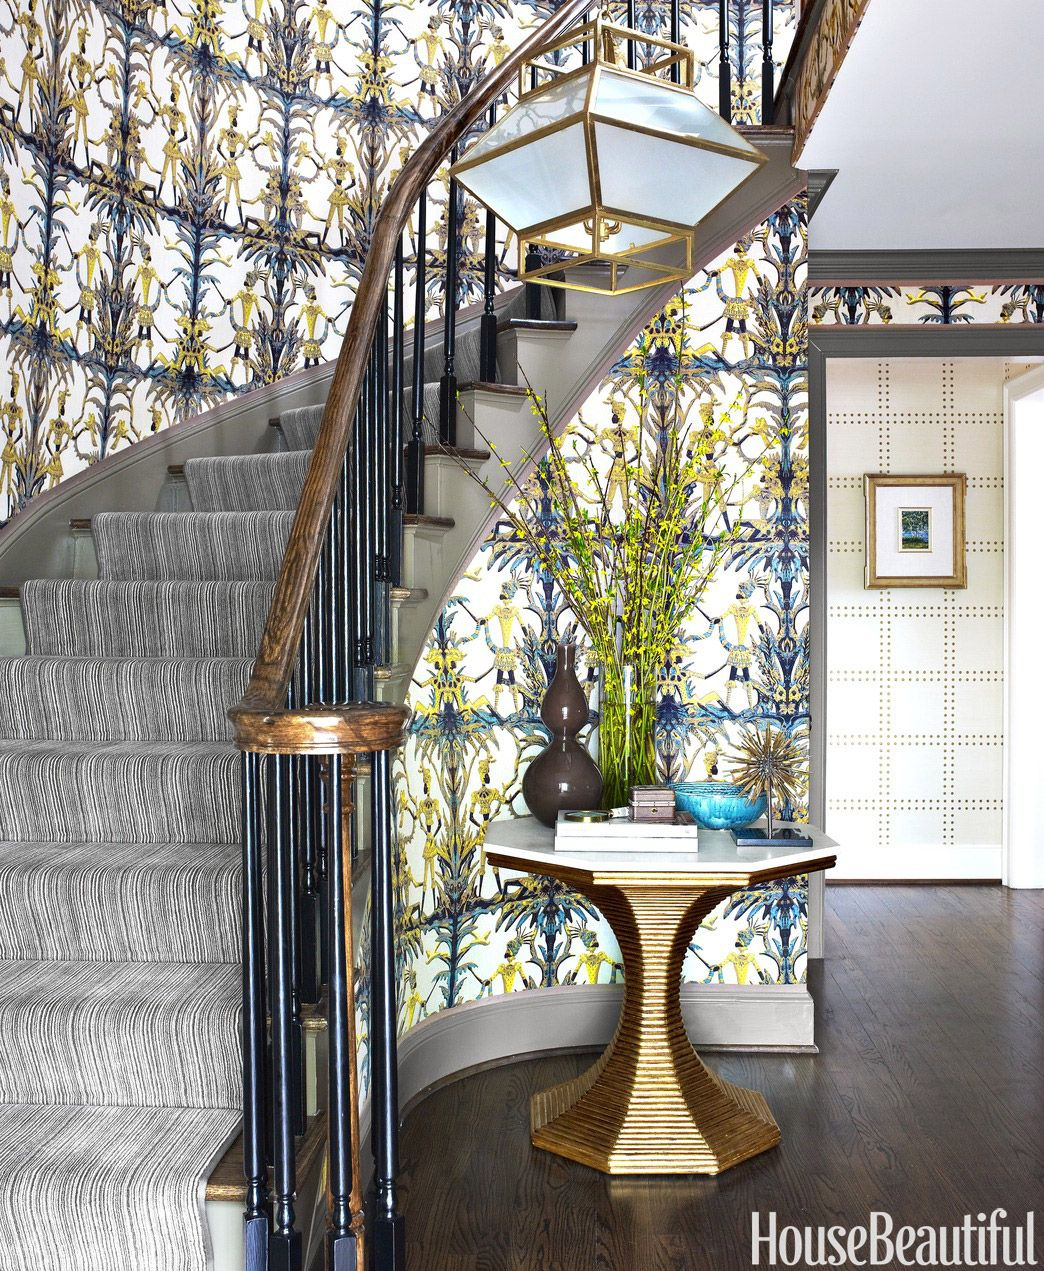 Pay.housebeautiful.com Interesting Colorful North Carolina House  Lindsey Coral Harper Interior Design Decorating Inspiration